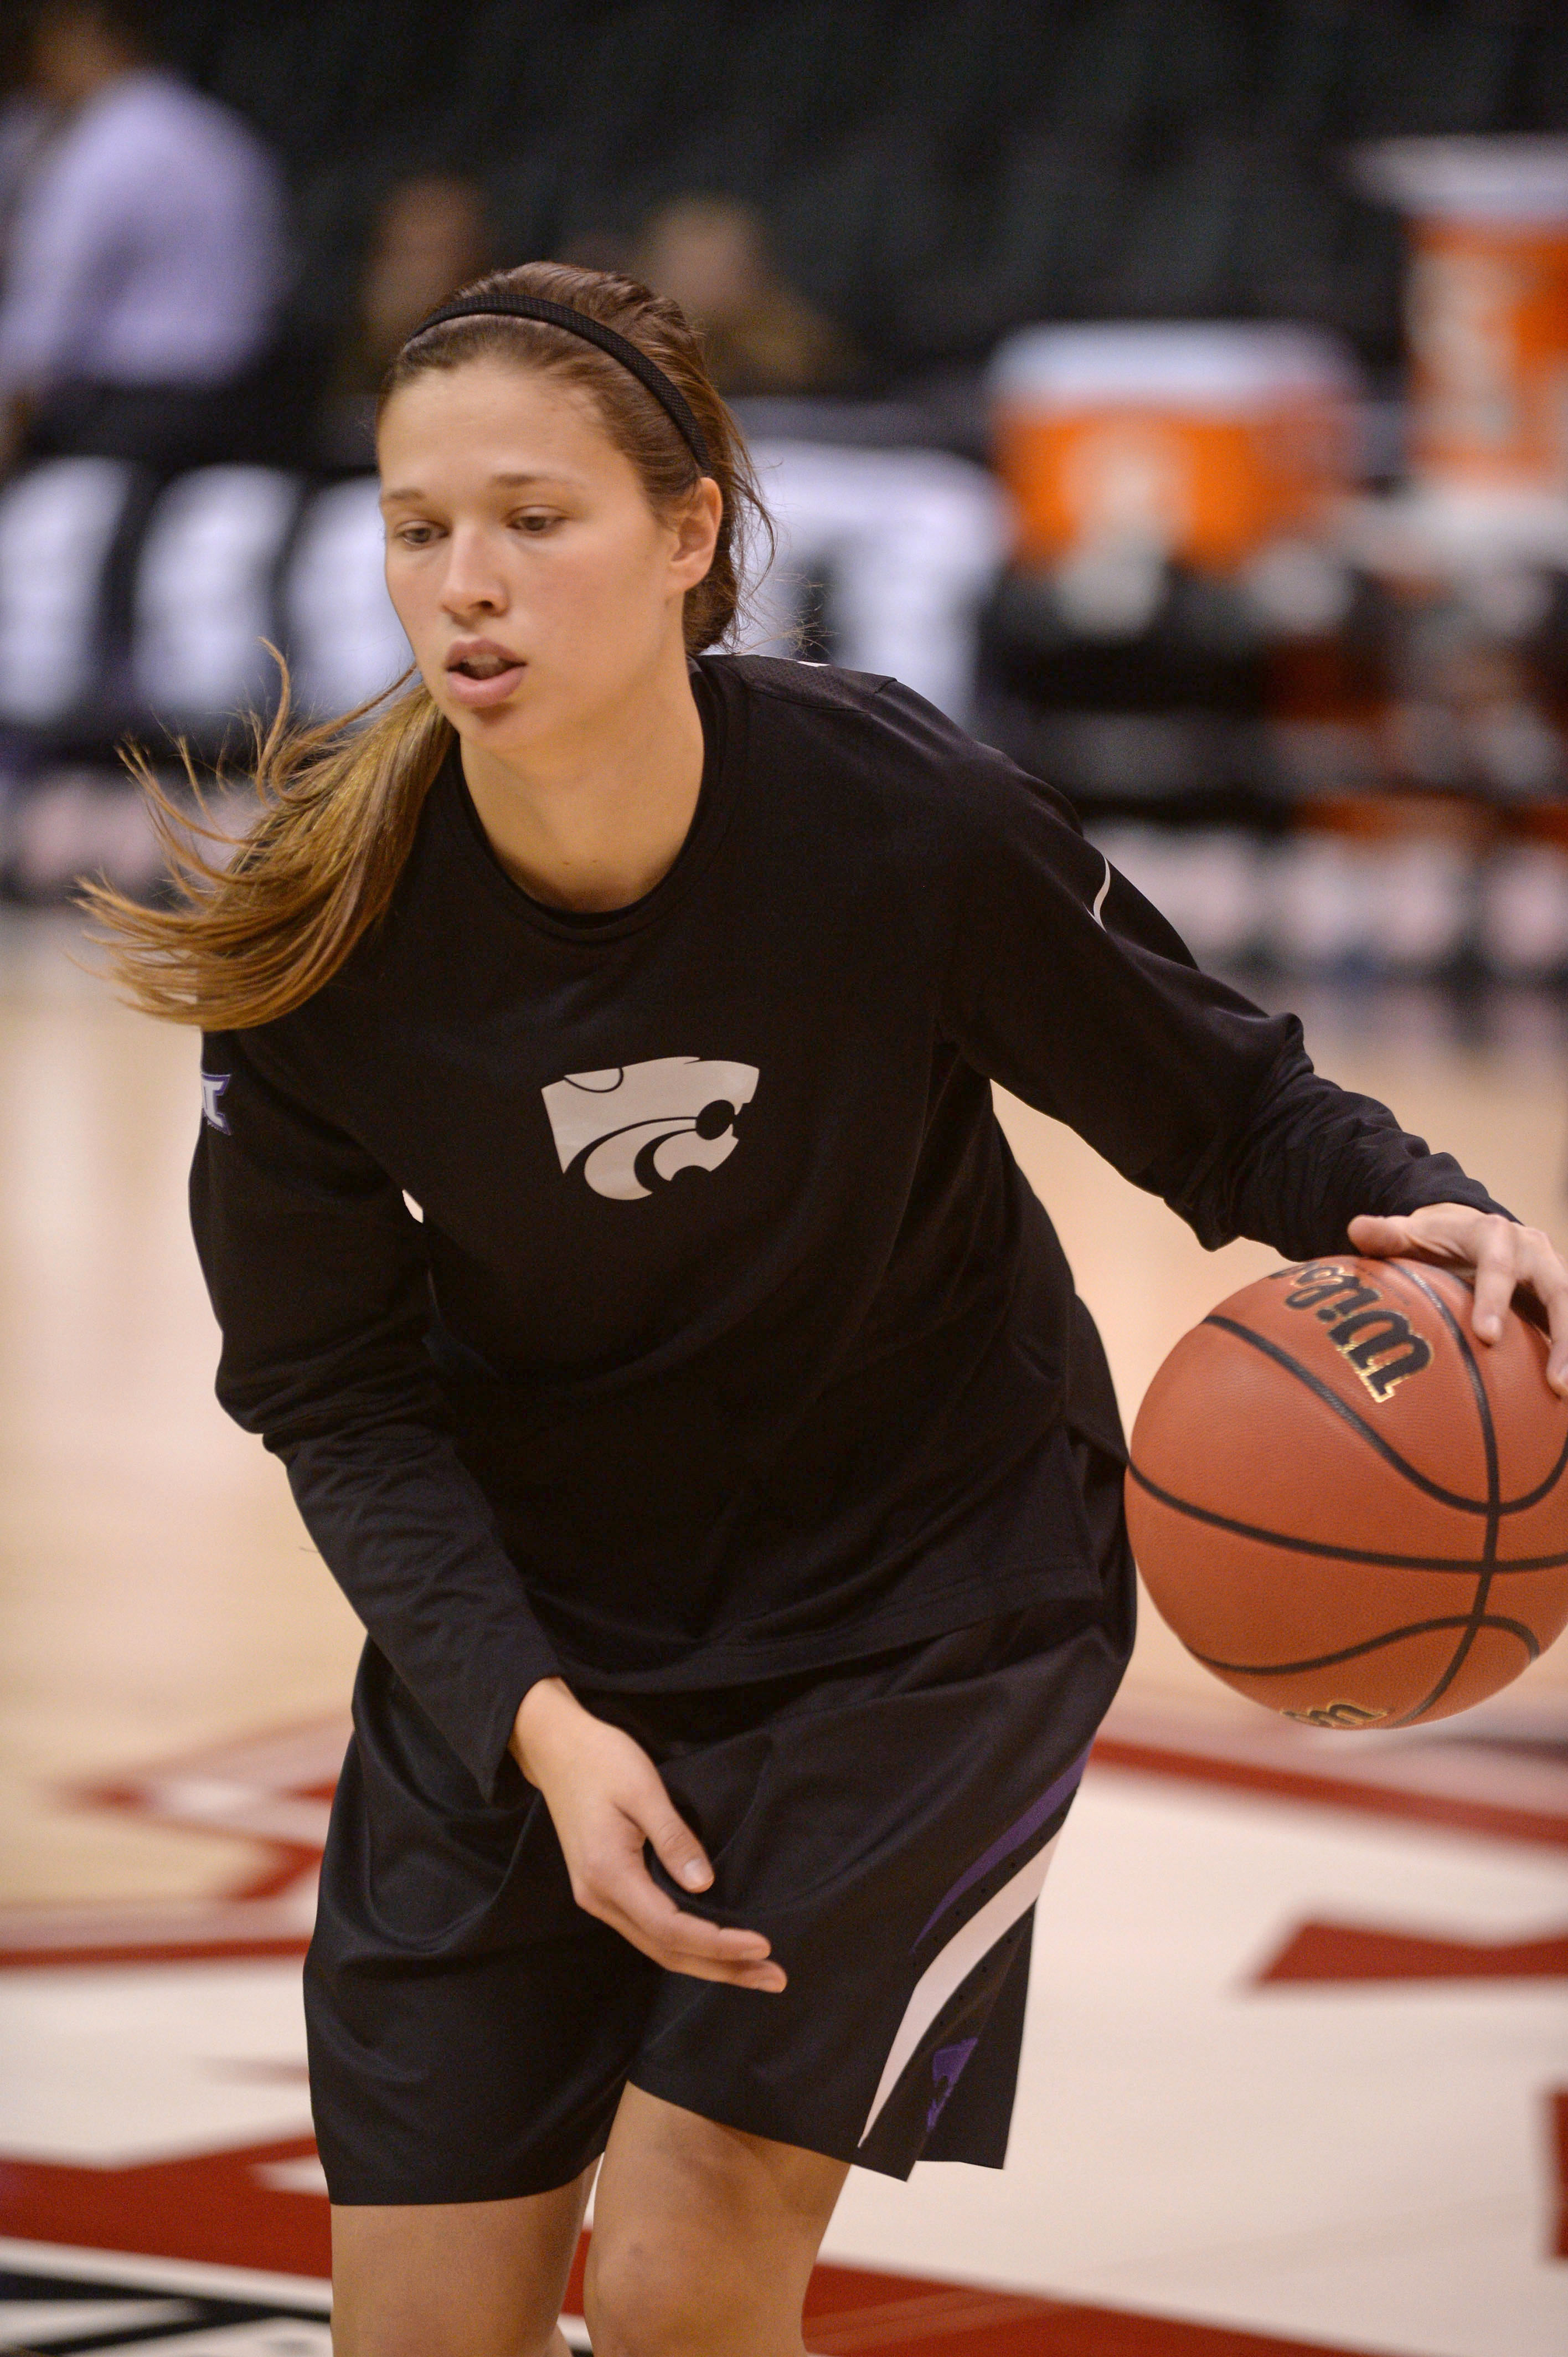 Kayla Goth is responsible for half of K-State's made baskets from the field so far this season.